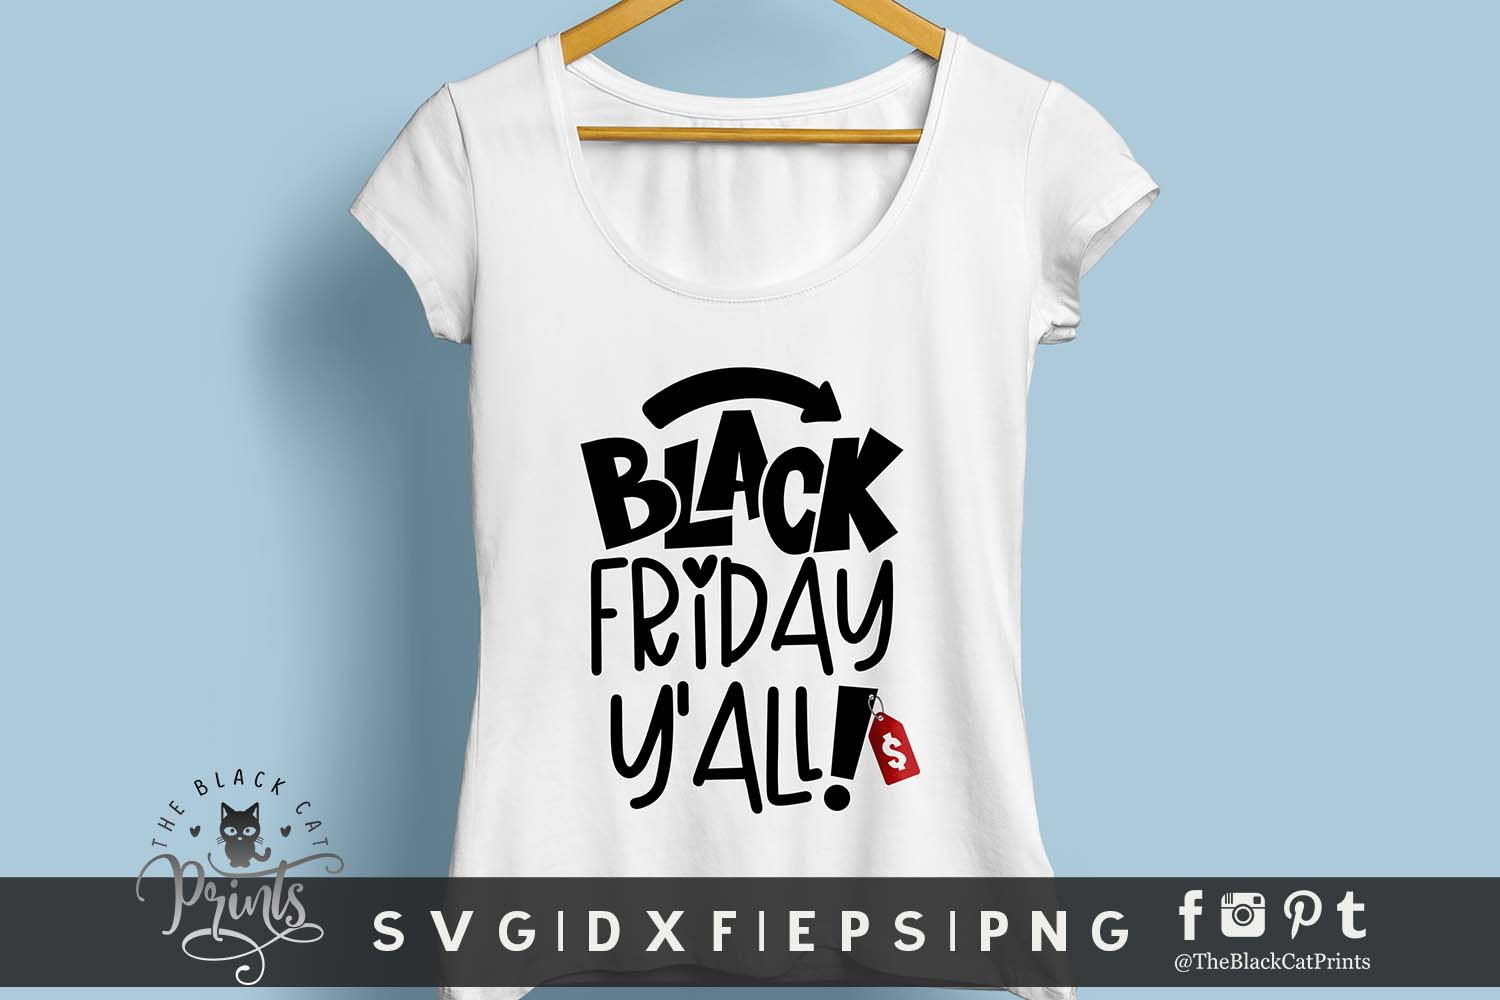 Black Friday Y'all! SVG DXF EPS PNG Funny Shopping svg example image 2